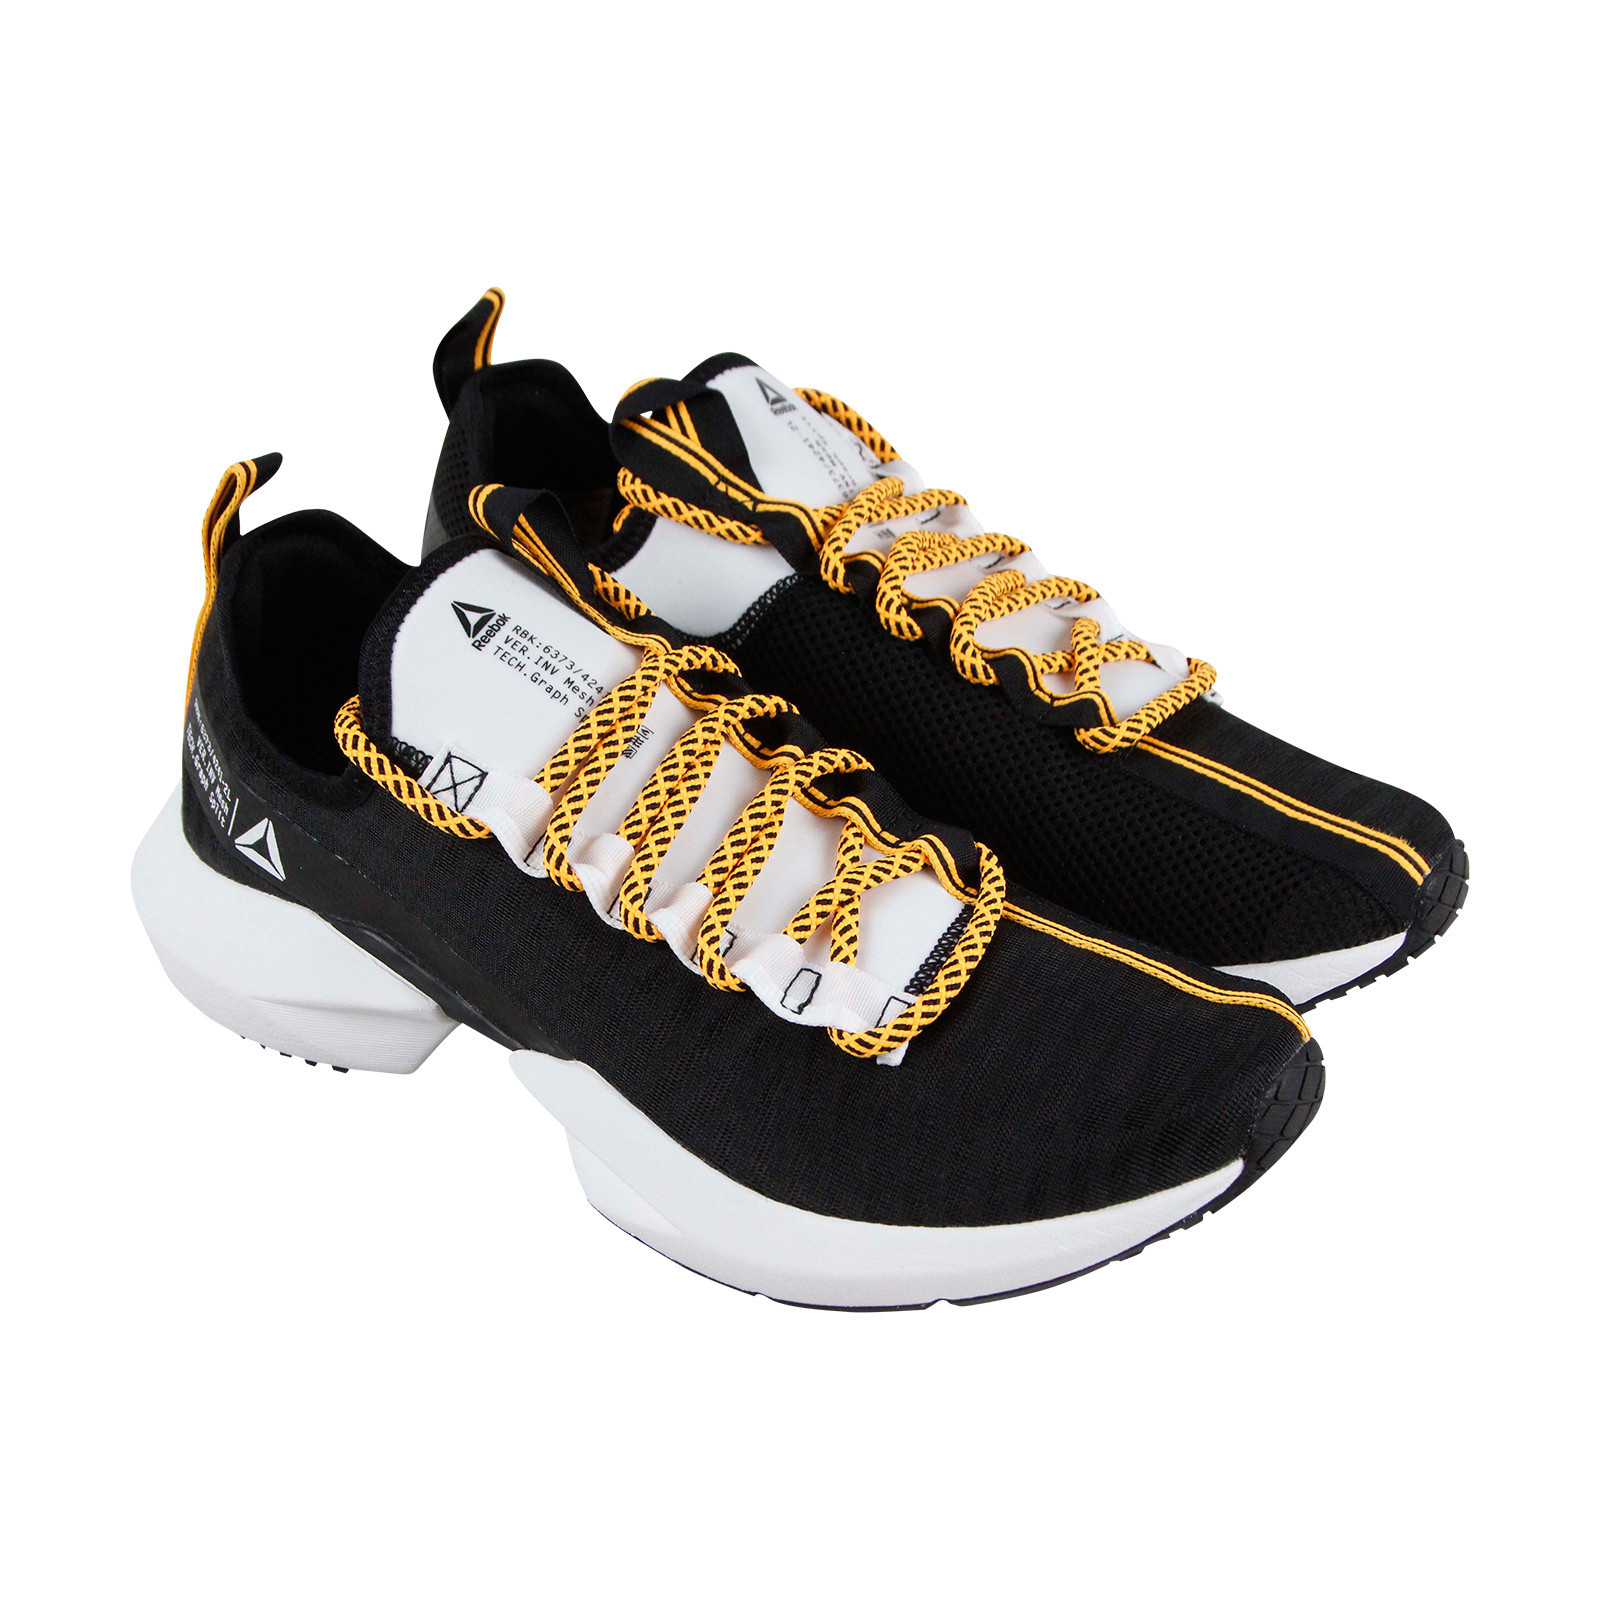 Обувь Reebok Sole Fury Se Black White Solar Gold 9 dv6919-sole-fury-se-black-white-solar-gold_3_3.jpg